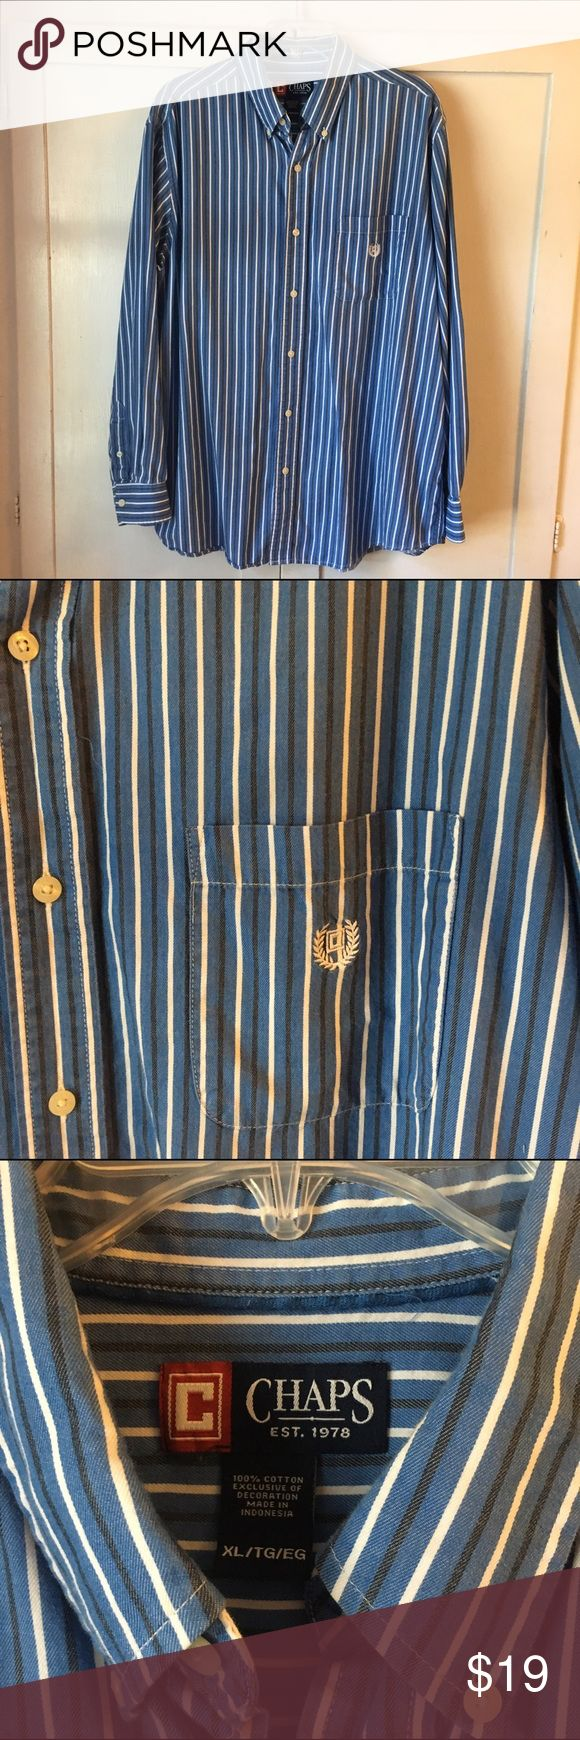 Chaps Ralph Lauren Navy Striped Button Down Perfect to wear with jeans or khakis! Well loved and cared for with price accounting wear. Thanks for looking! Chaps Shirts Dress Shirts